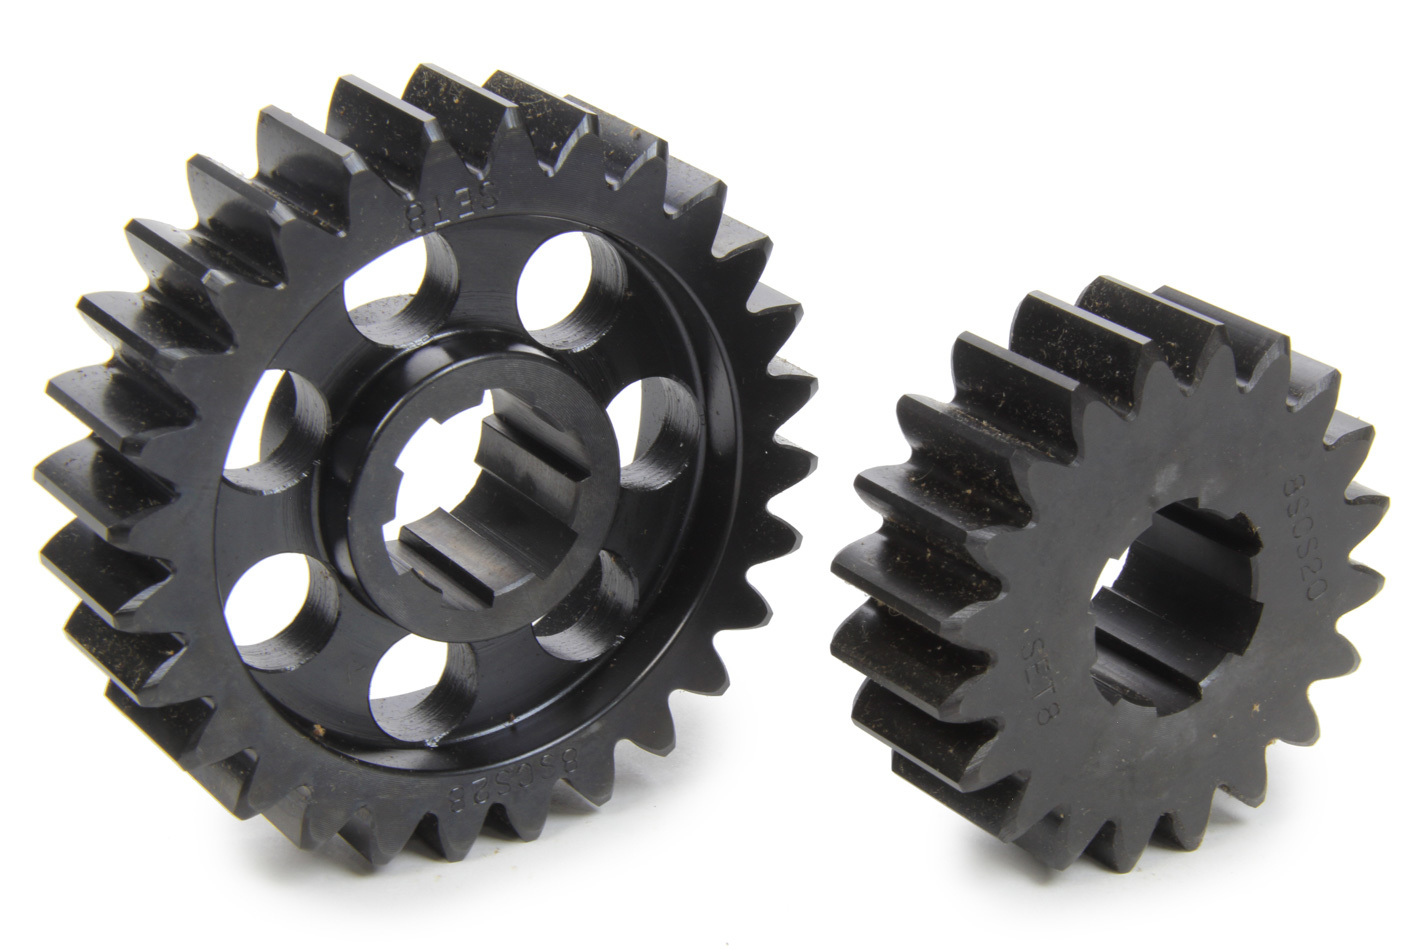 SCS Gears 68 Quick Change Gear Set, Professional, Set 68, 6 Spline, 4.11 Ratio 2.94 / 5.75, 4.33 Ratio 3.09 / 6.06, Steel, Each